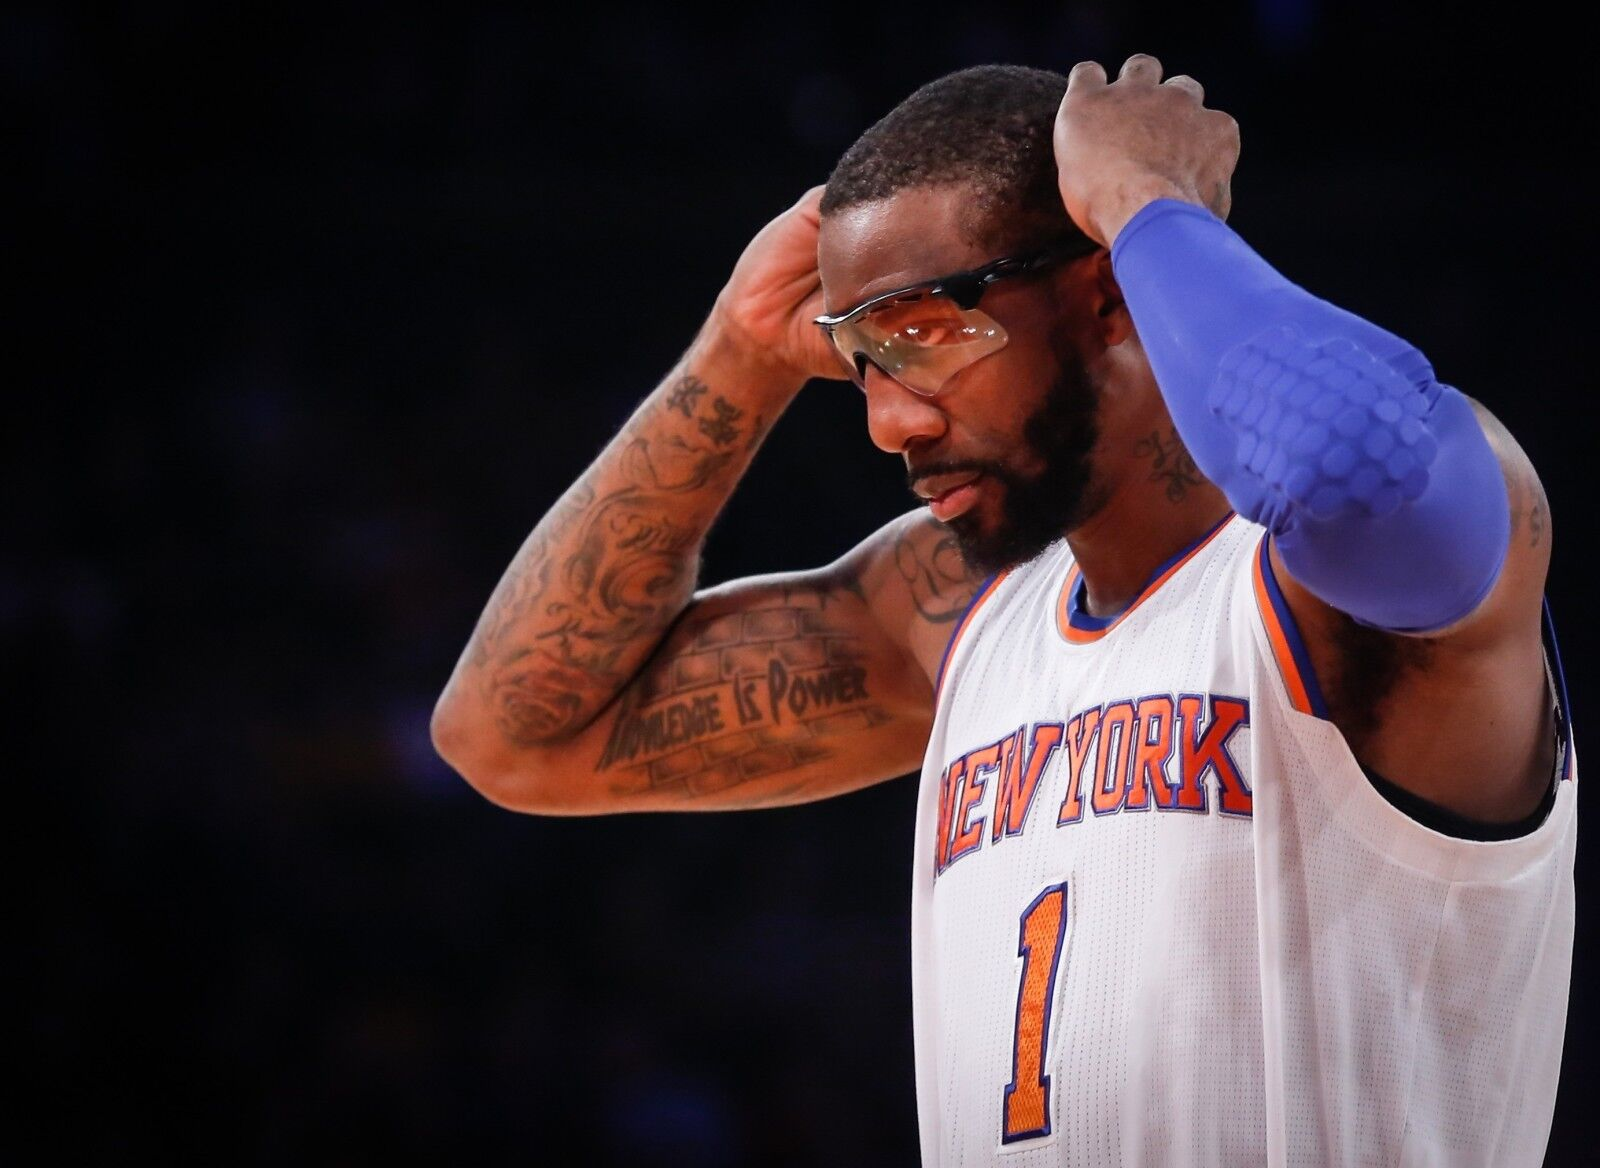 New York Knicks: Amar'e Stoudemire eligible for 2020 Hall of Fame class